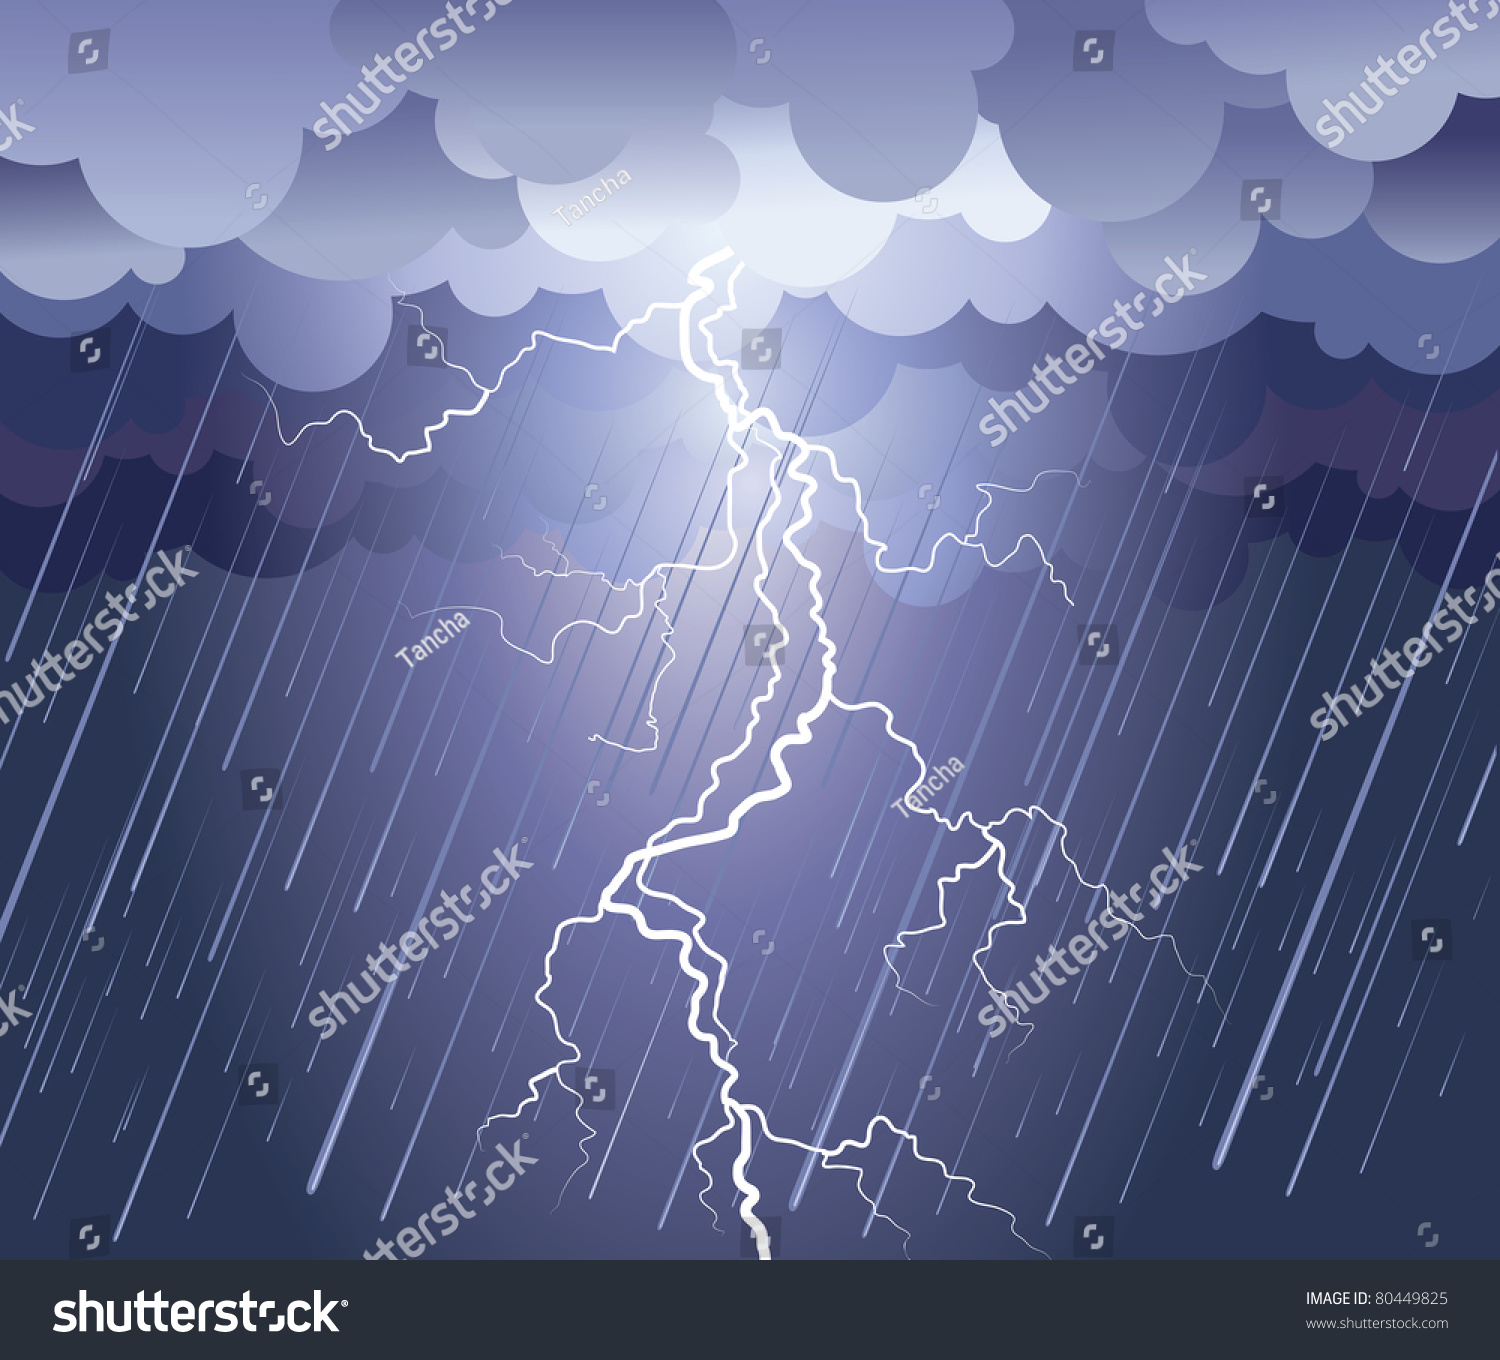 Lightning Strikevector Rain Image Dark Clouds Stock Vector ...